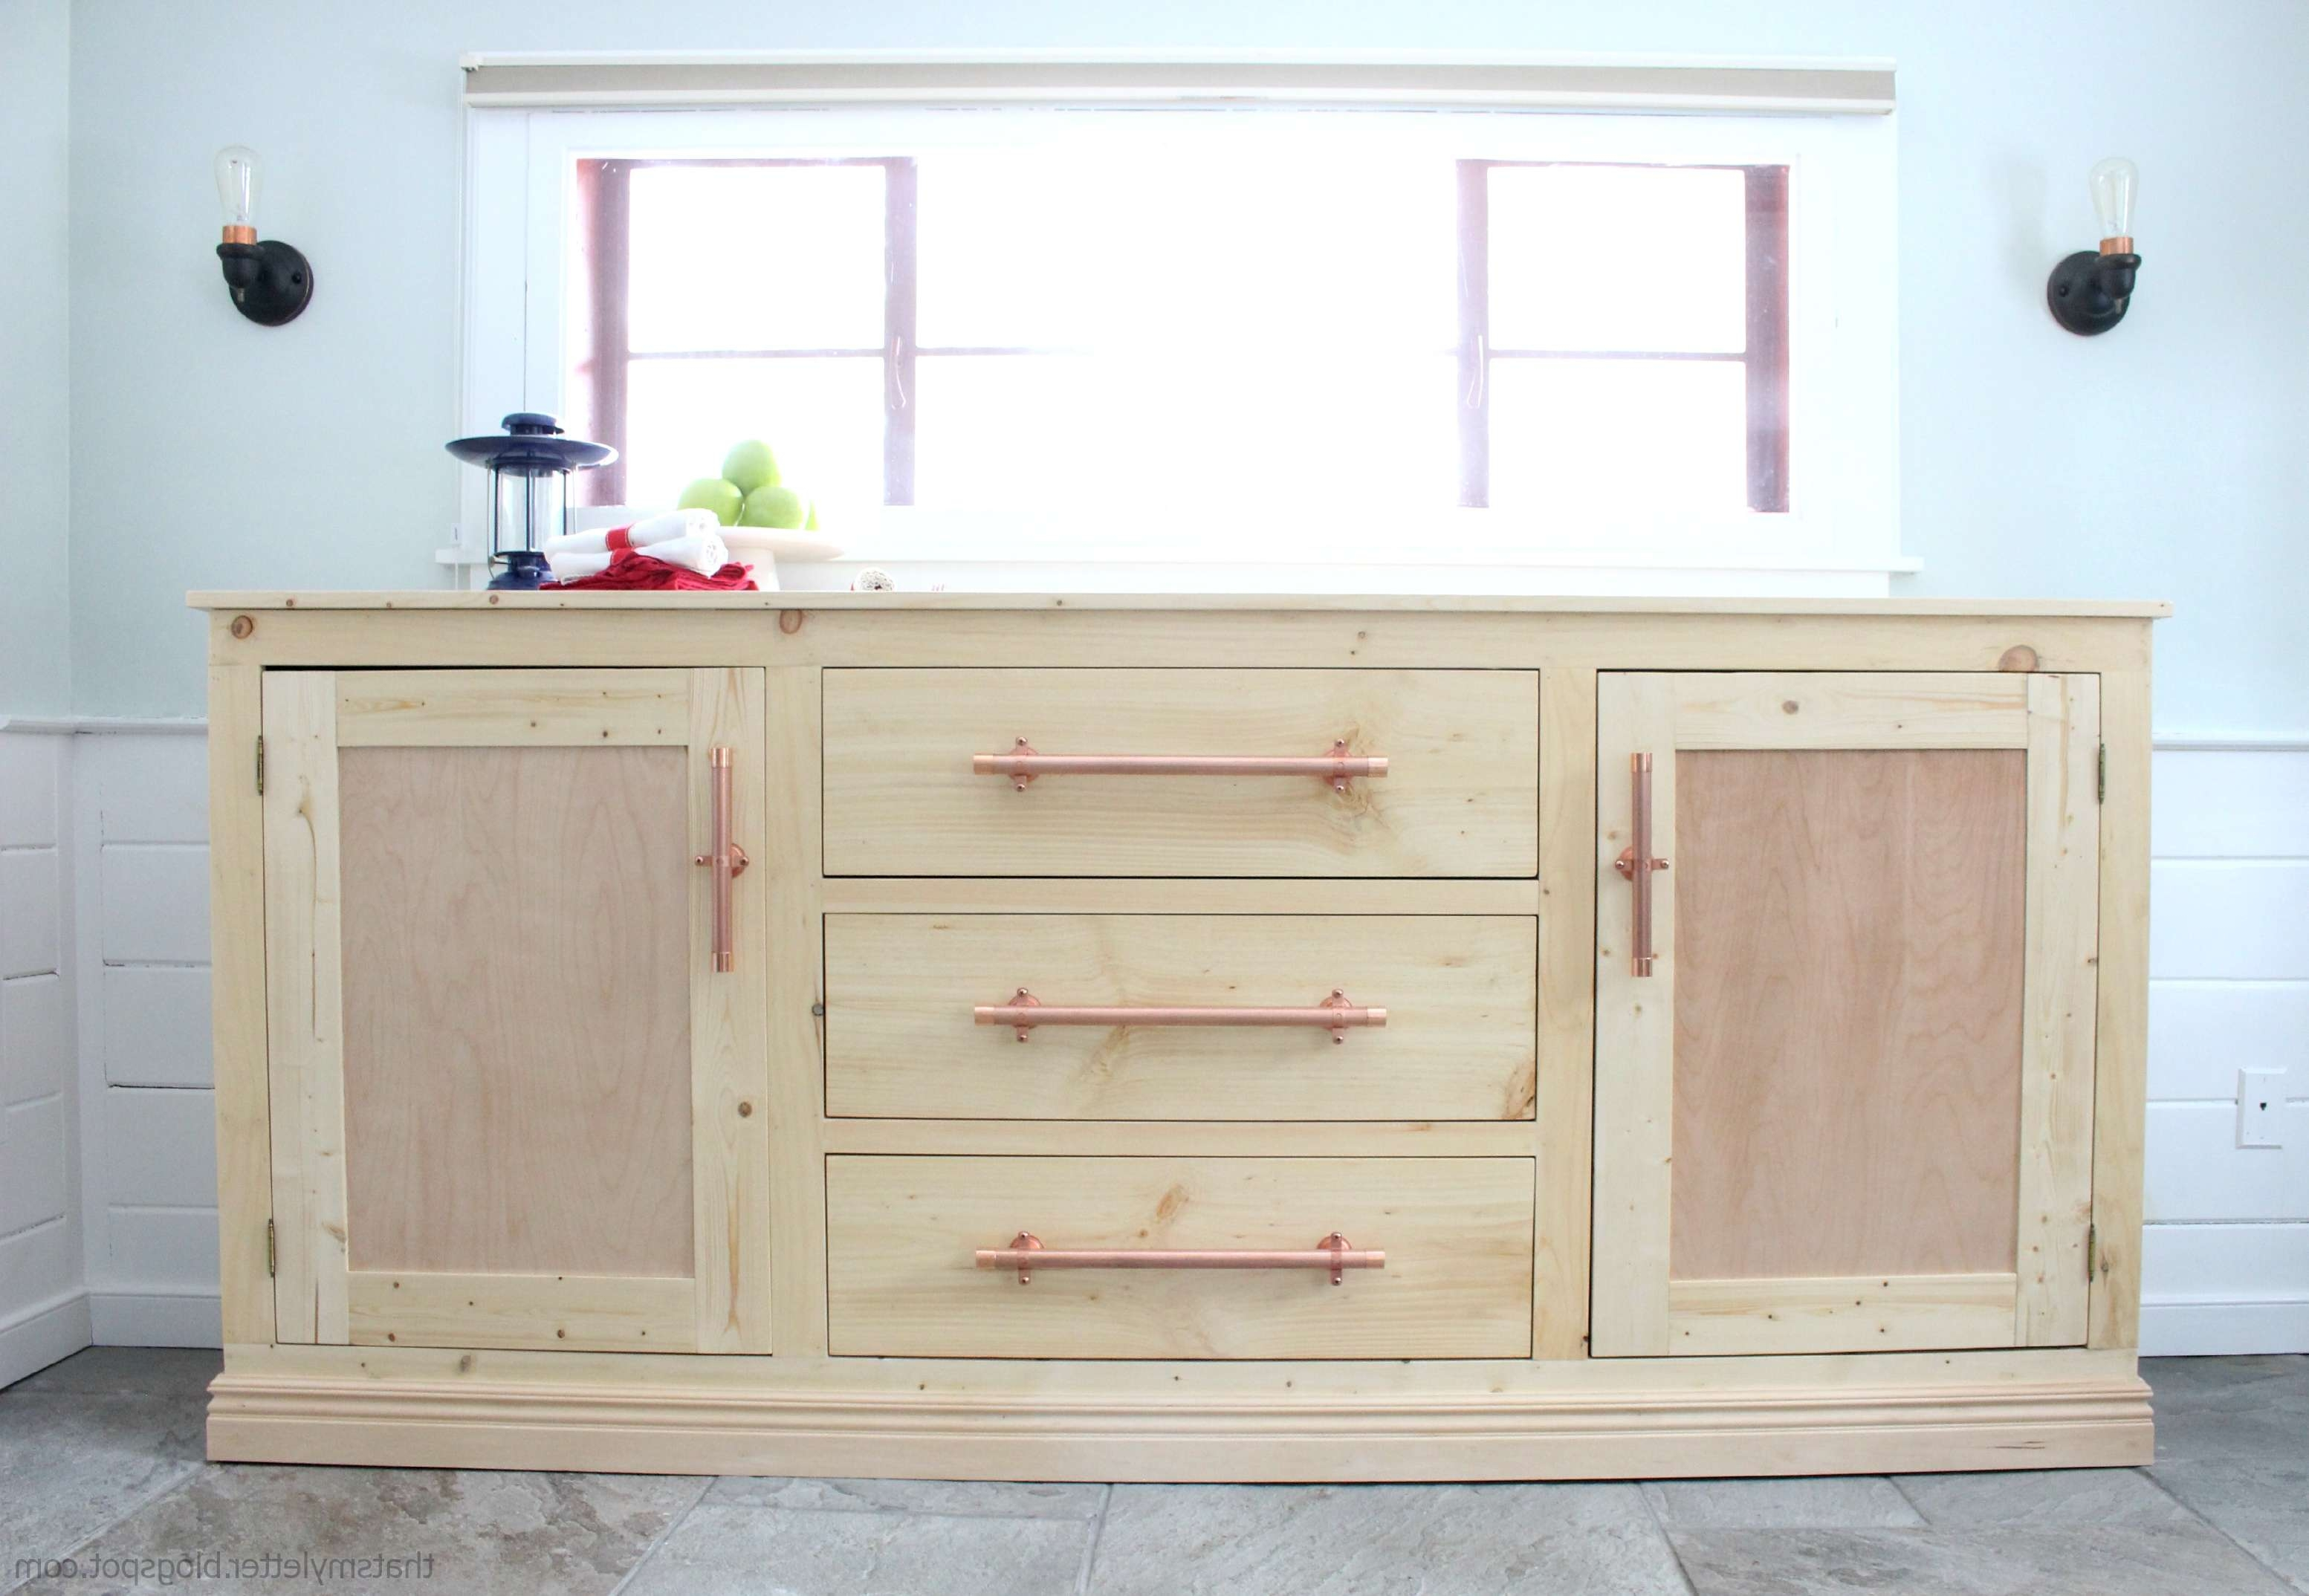 Ana White | Extra Long Buffet Cabinet – Diy Projects Inside Slim White Sideboards (View 1 of 20)